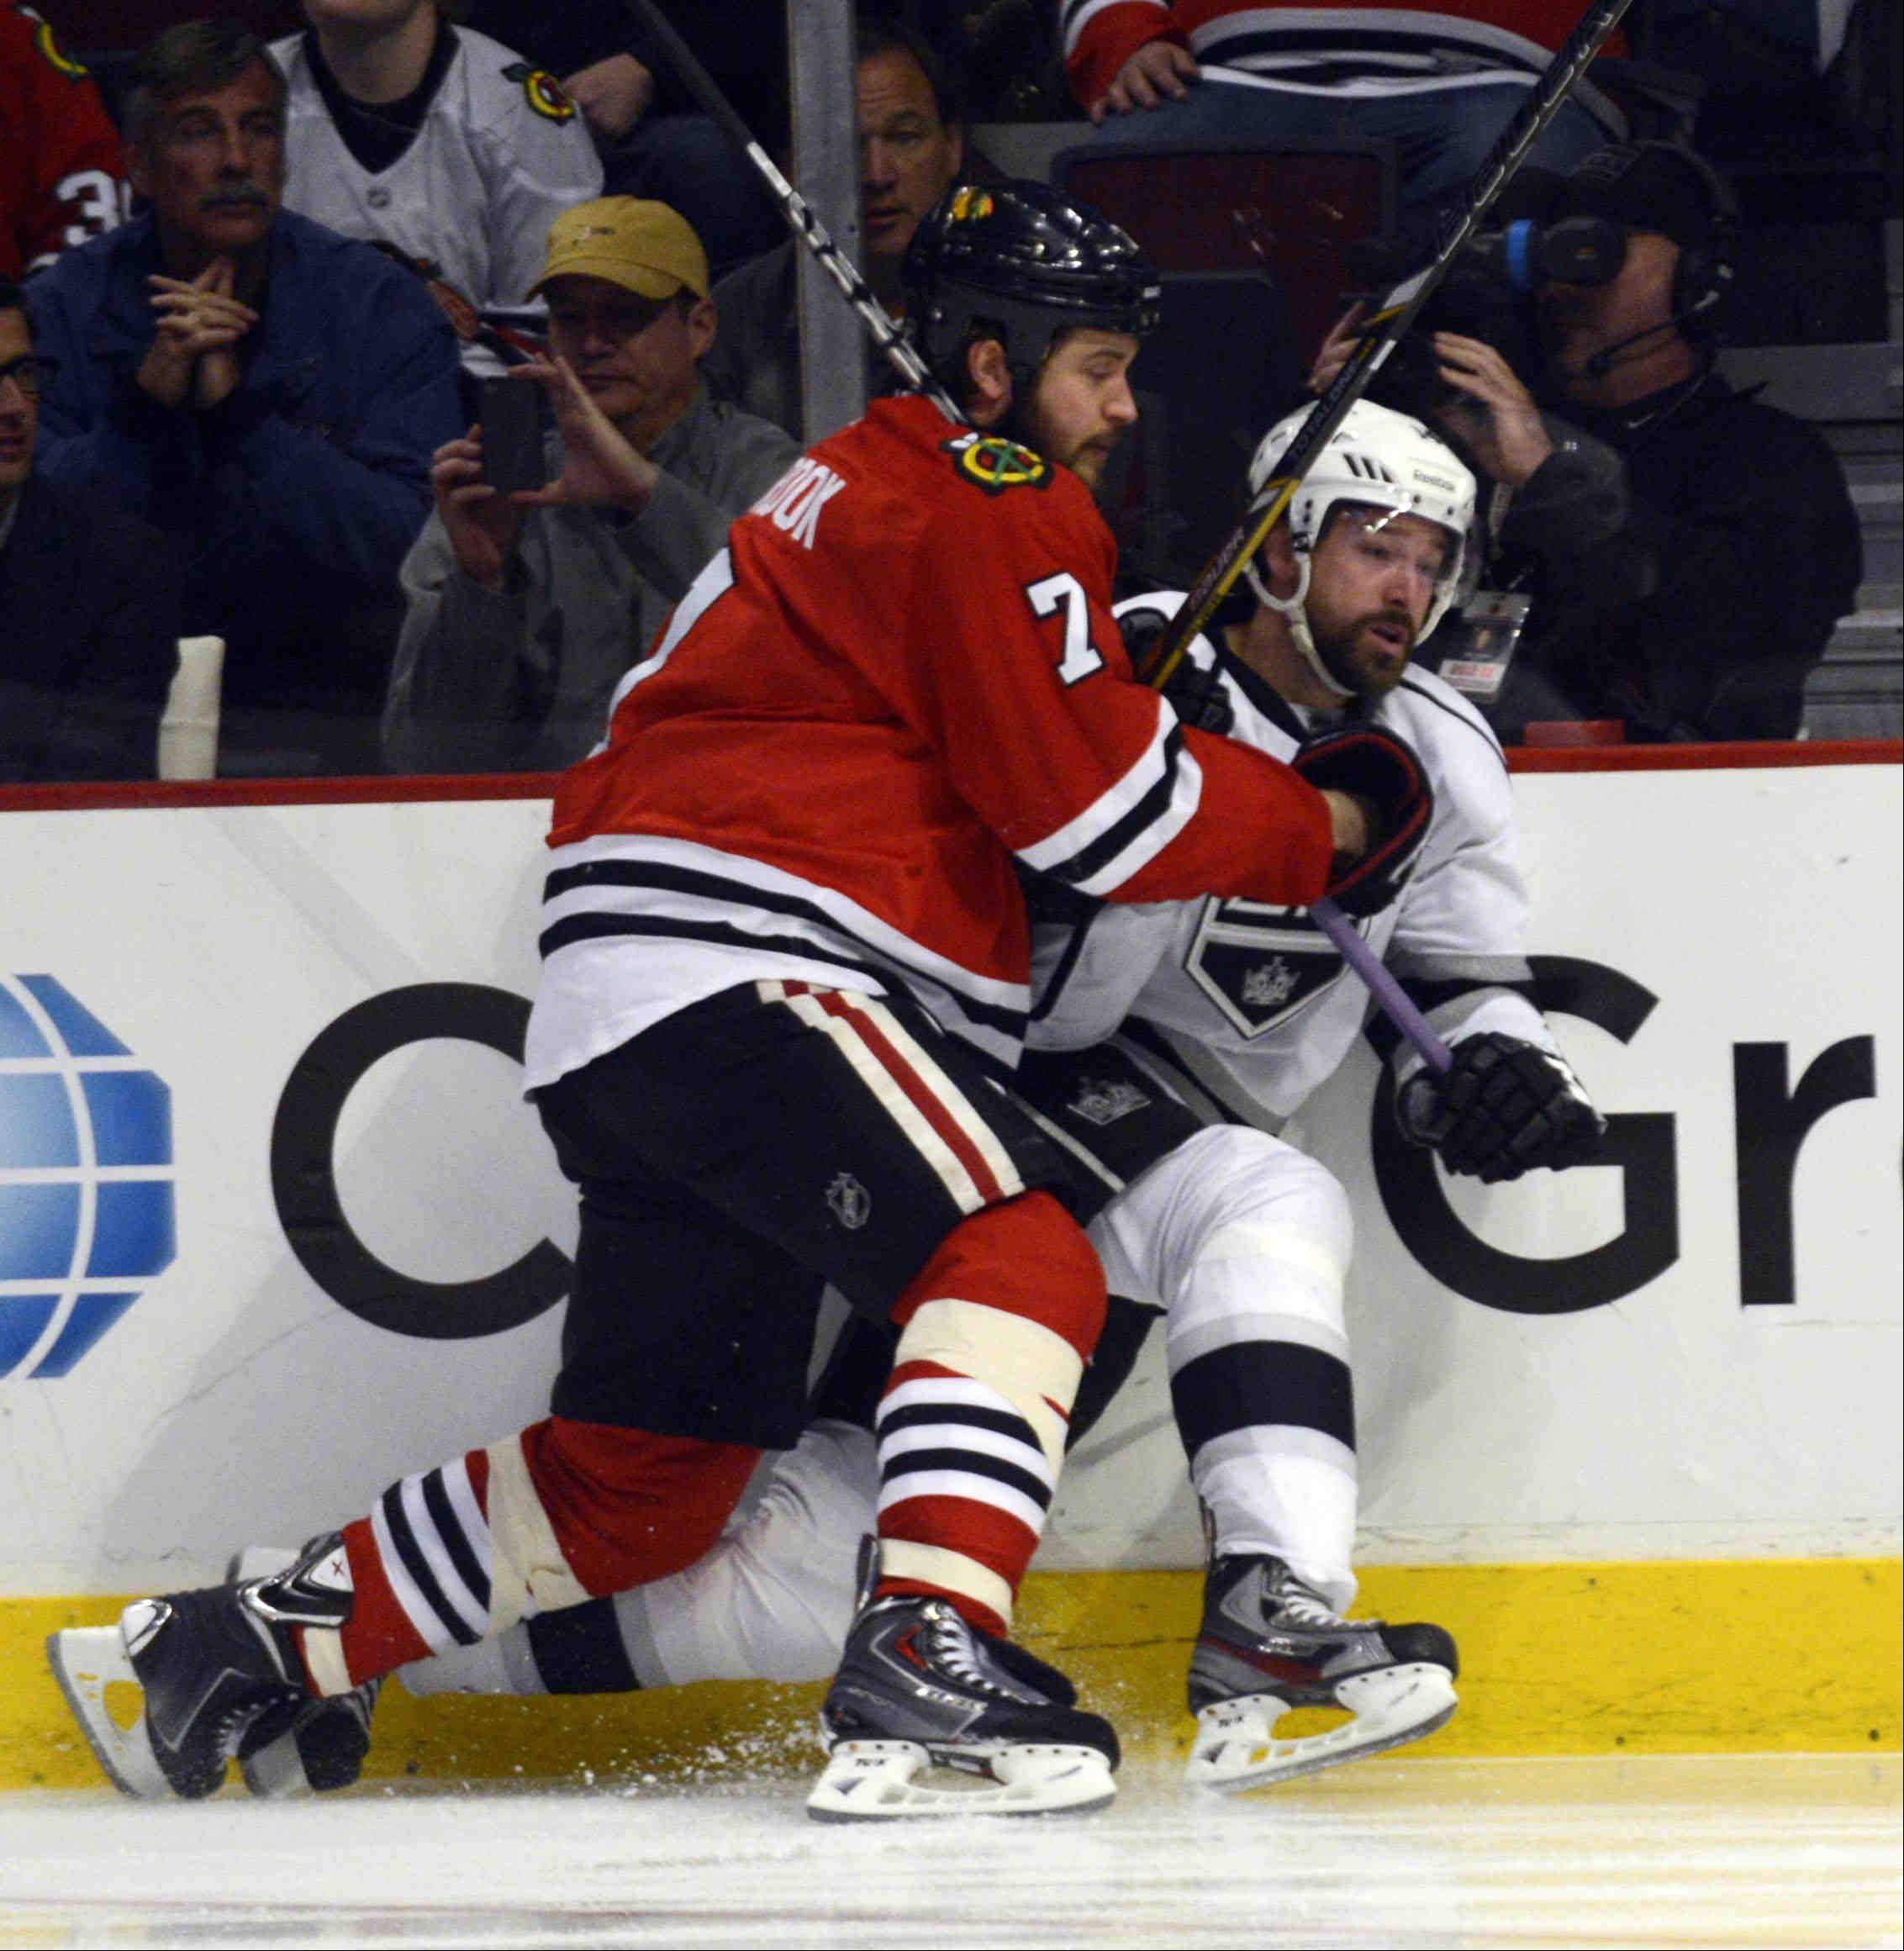 Blackhawks defenseman Brent Seabrook pins Los Angeles Kings right wing Justin Williams against the boards in the second period during Game 2 of the Western Conference finals Sunday at the United Center.